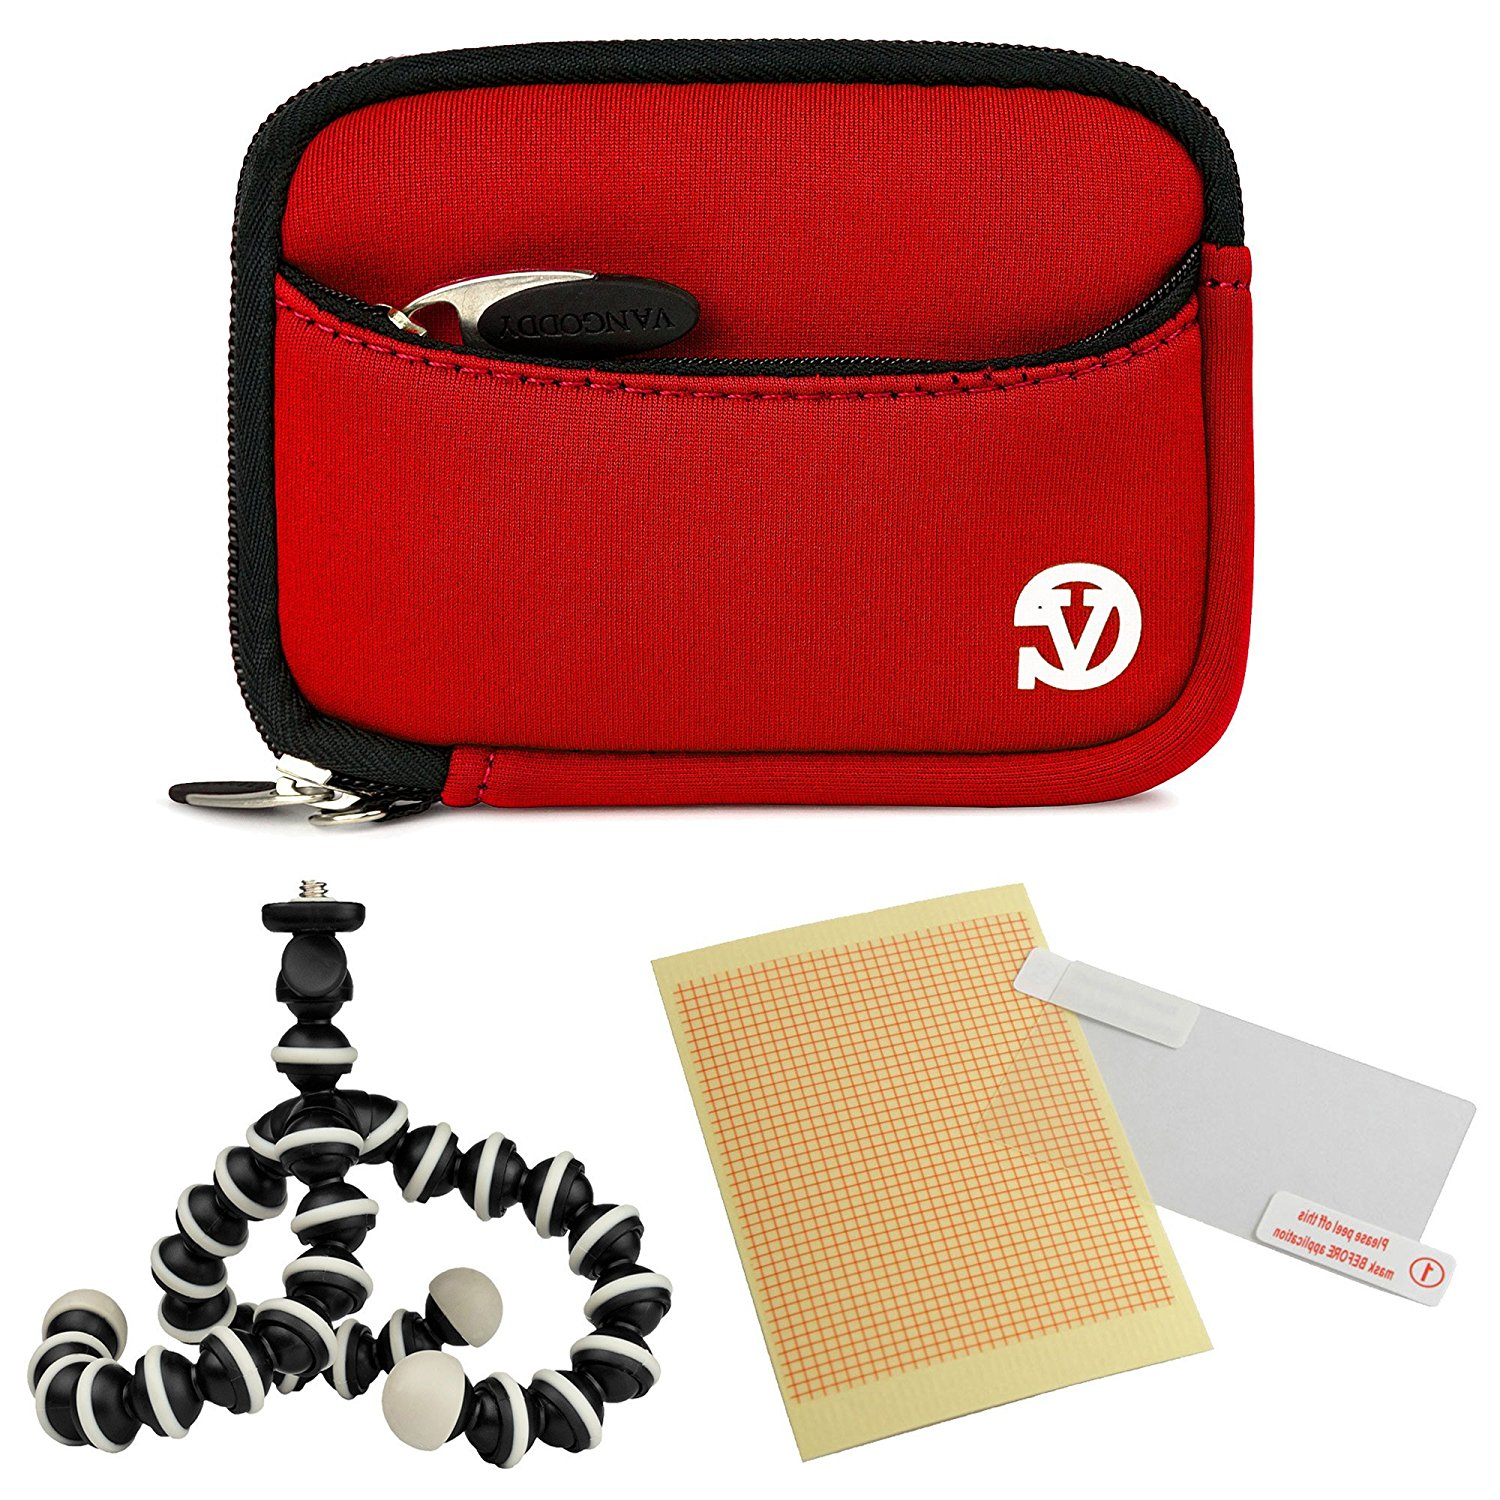 VanGoddy Mini Glove Sleeve Pouch Case for Canon PowerShot S120, S110, S100, S95, S90 Digital Cameras (Red)+ Screen Protector + Mini Tripod Stand